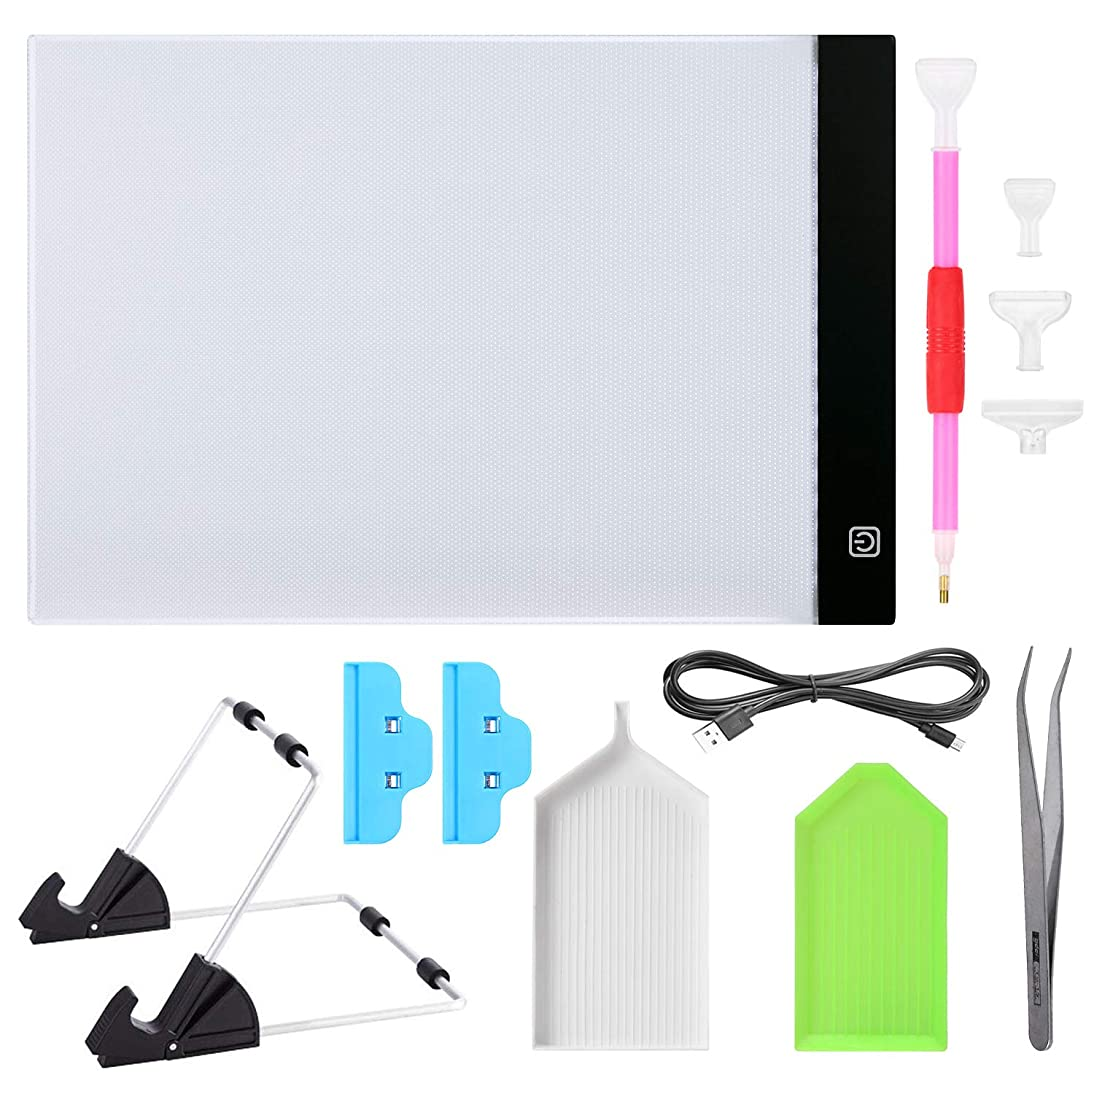 MACTING A4 LED Light Tablet Board Pad Kit with Detachable Metal Stand, Metal Tweezers, Diamond Painting Pens, Plastic Clips, Trays Cross Stitch Accessories for DIY Art Craft (11PCS A4) …